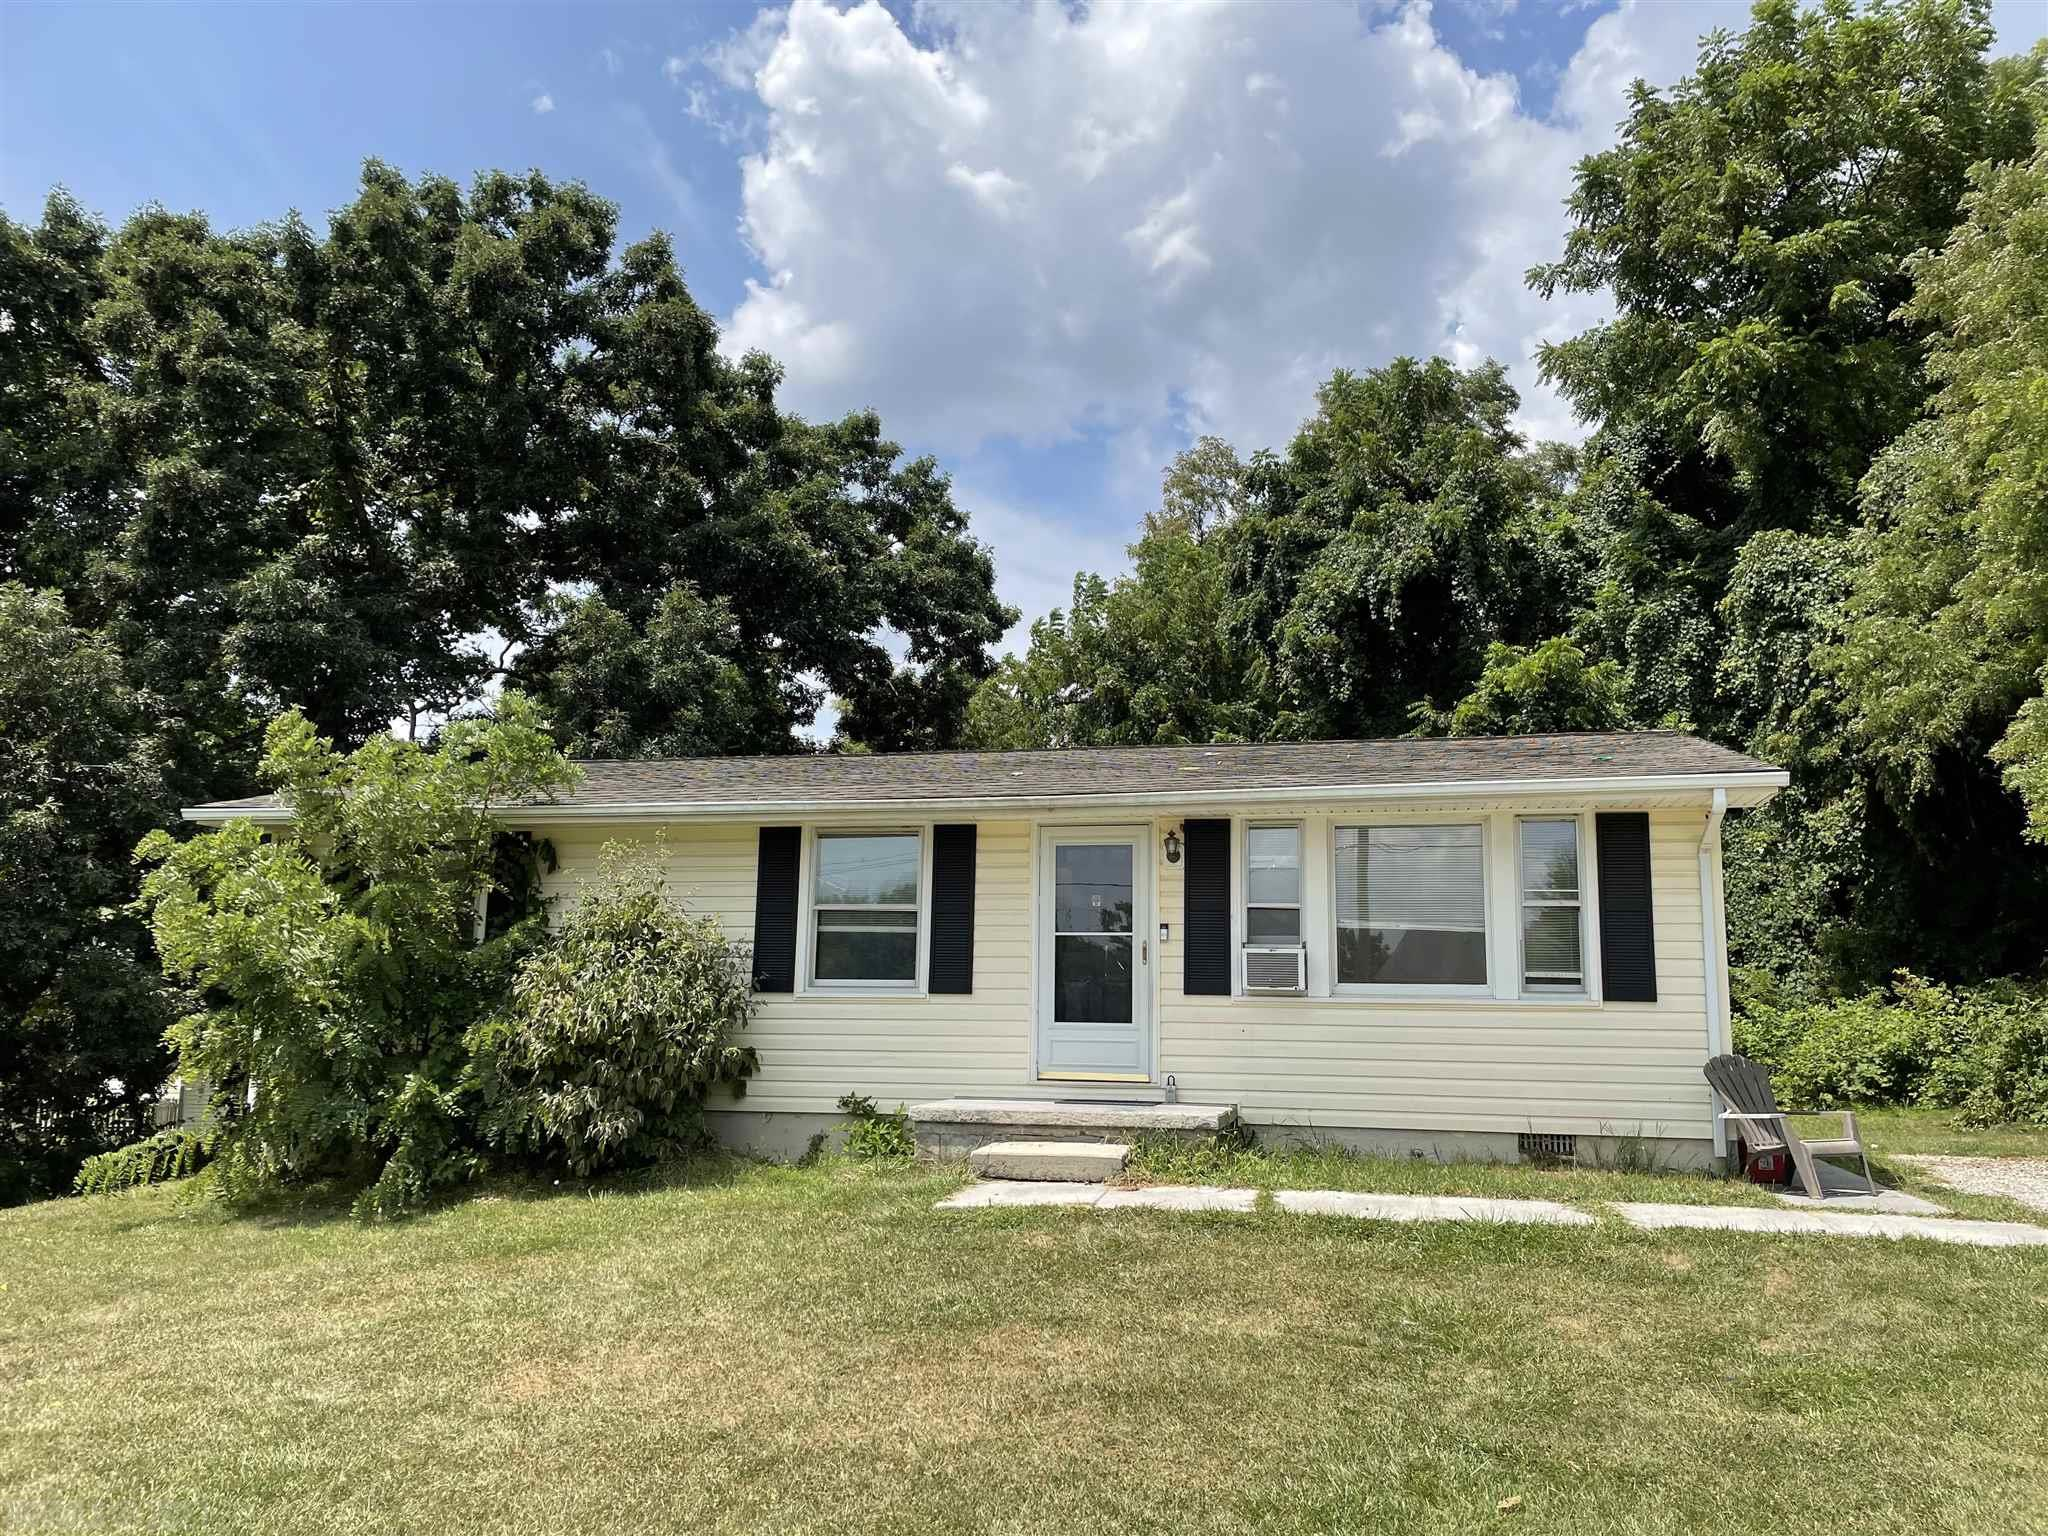 One level ranch style home in convenient location. Nice starter home or house for someone that needs one level living. Newer laminate flooring in part of home and remodeled bathroom. Large lot - almost 1 acre.